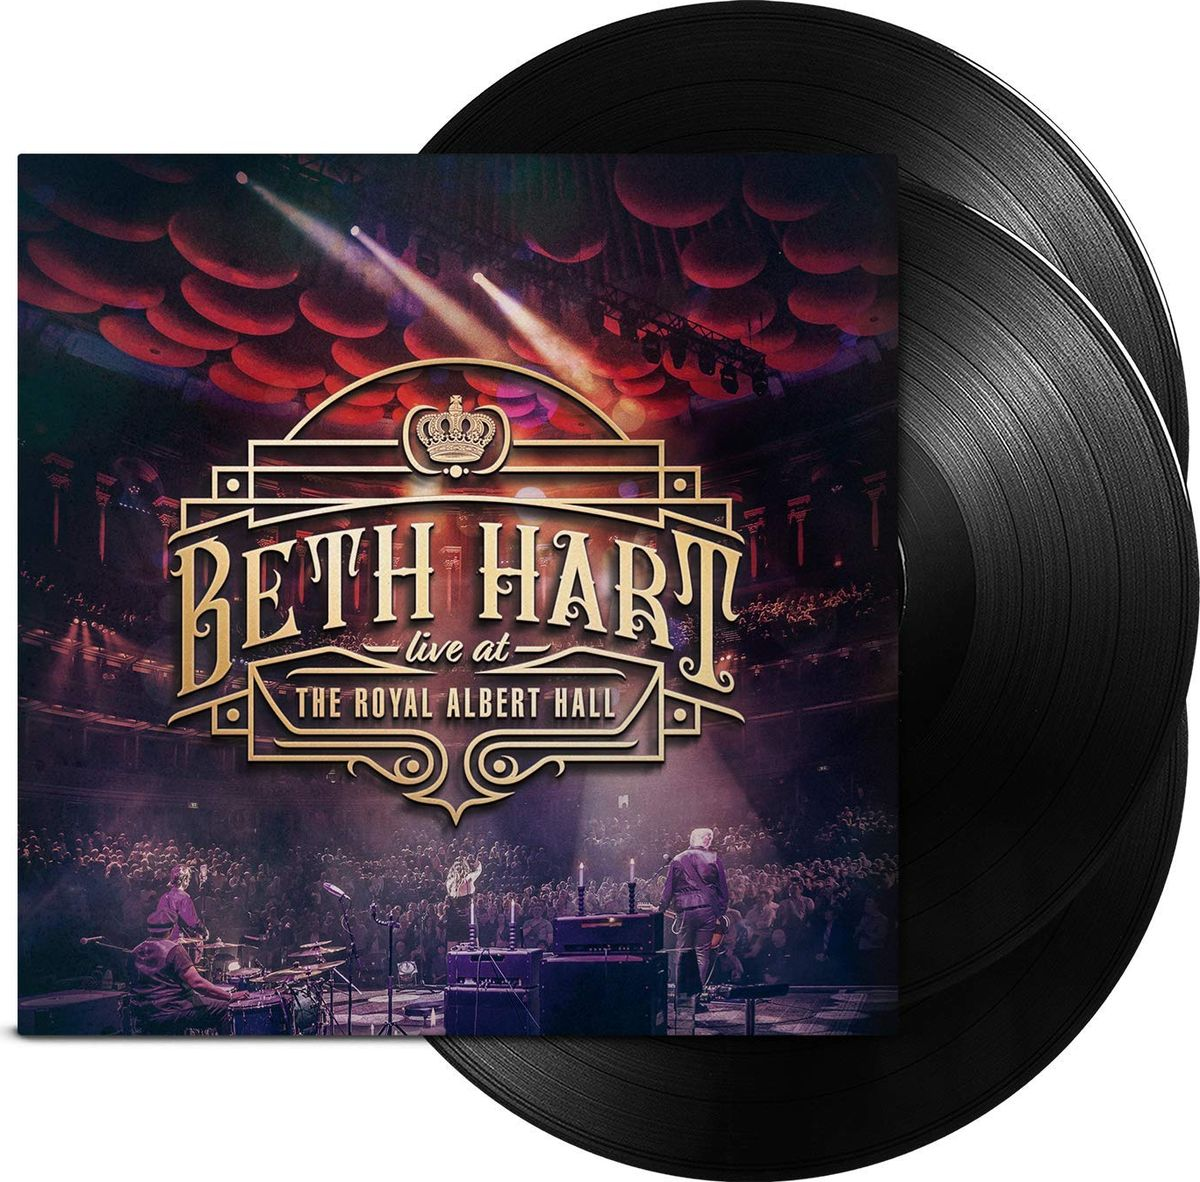 Бет Хат Beth Hart. Live At The Royal Albert Hall (3 LP + MP3) beth hart beth hart leave the light on 2 lp colour